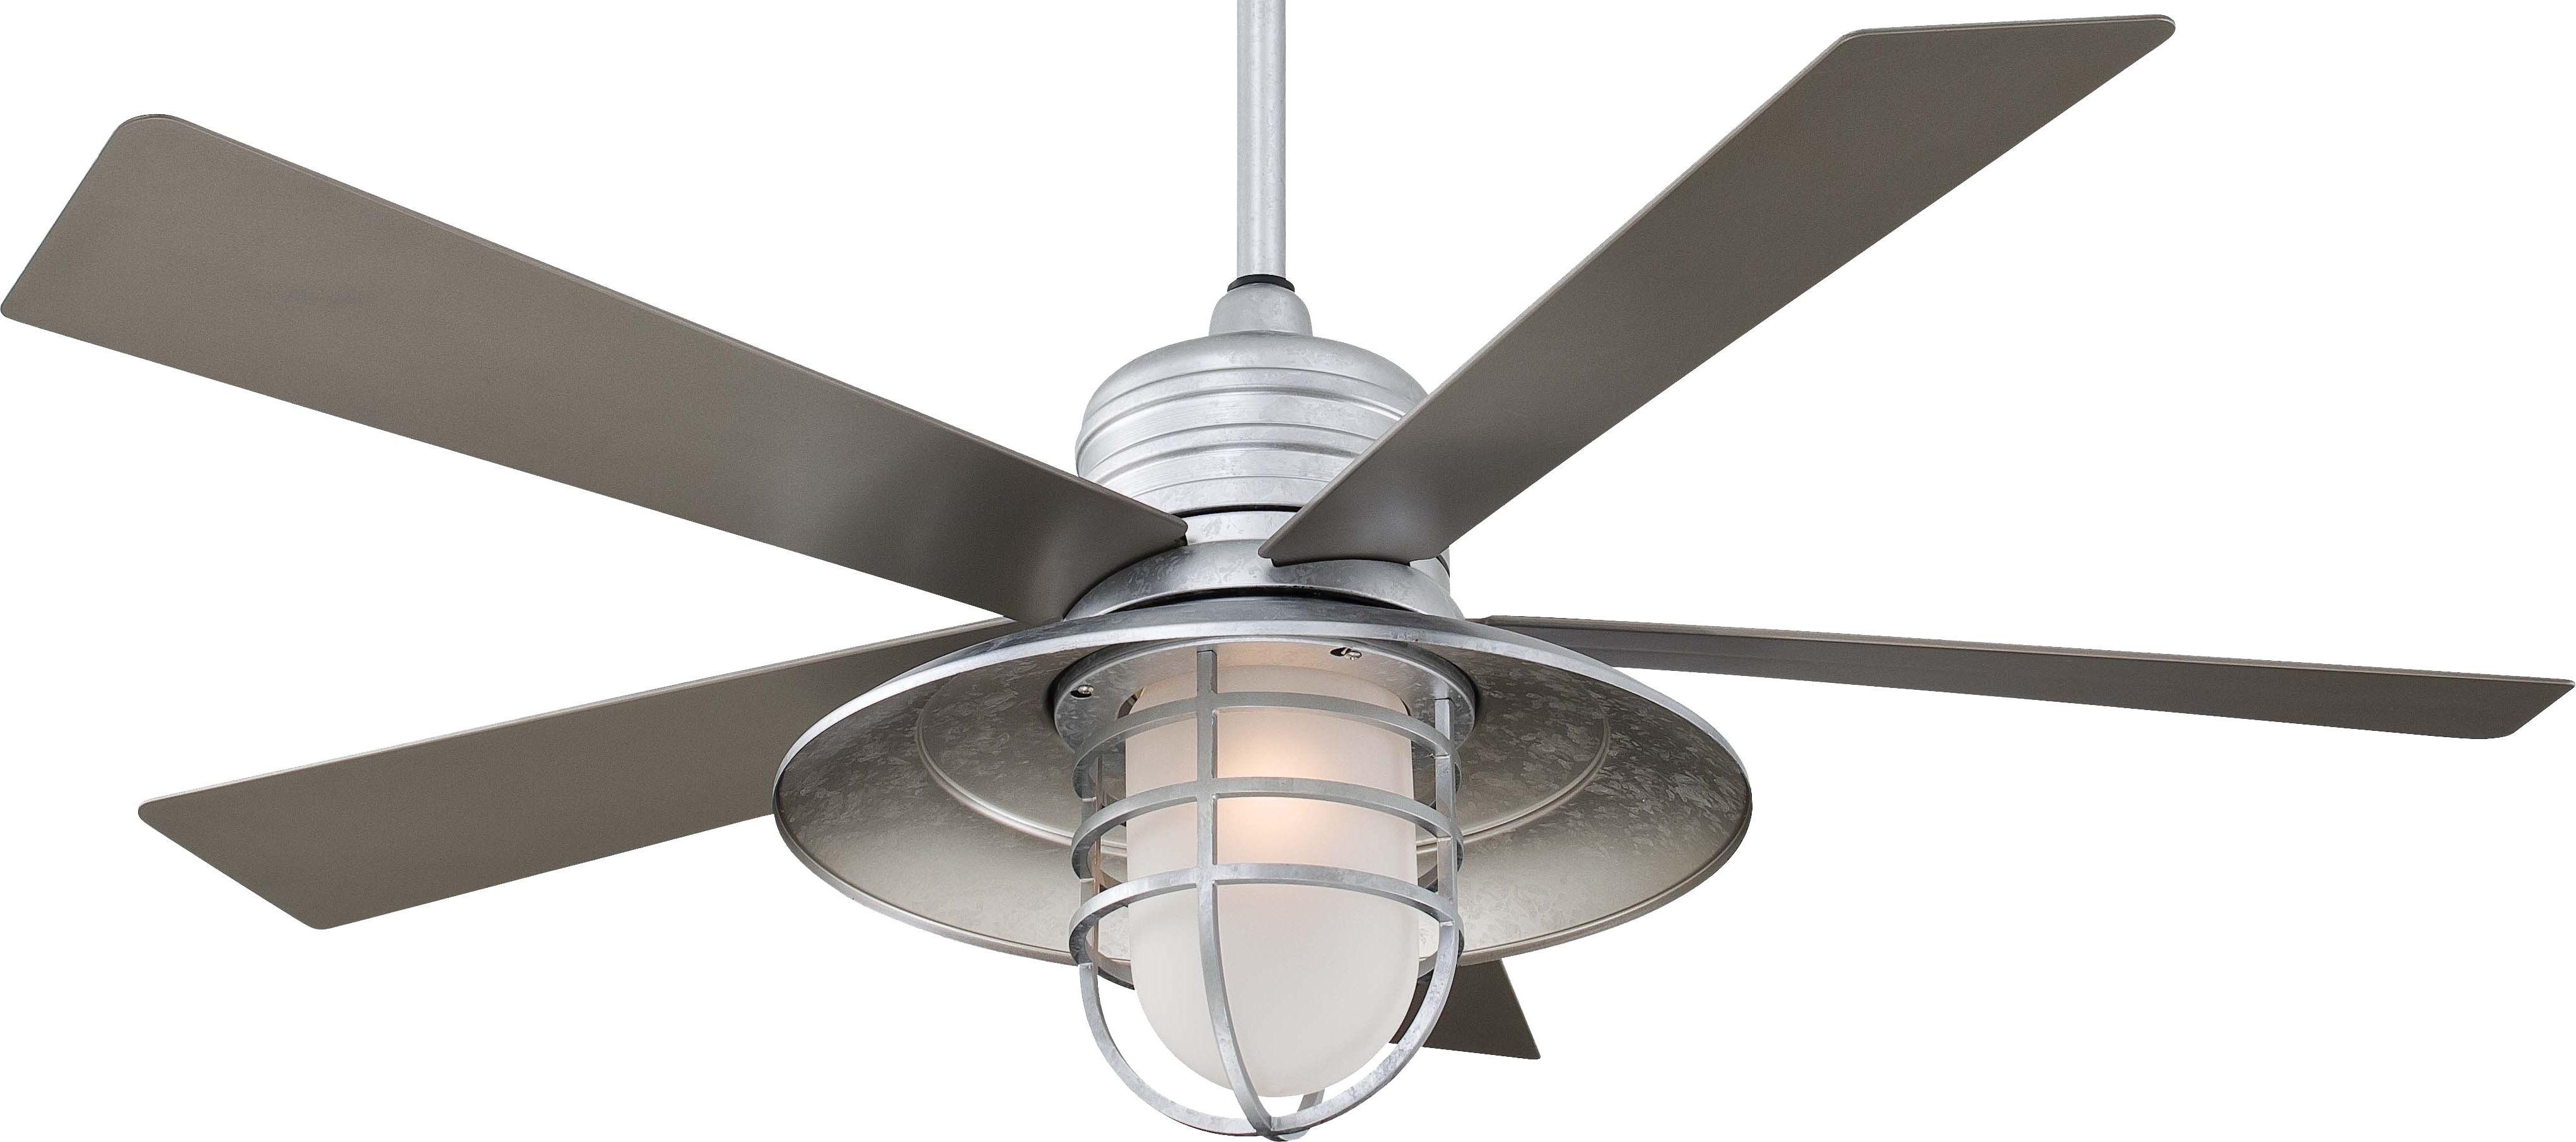 Most Popular Large Indoor Ceiling Fans With Lights Outstanding Outdoor Ceiling Throughout Large Outdoor Ceiling Fans With Lights (View 17 of 20)